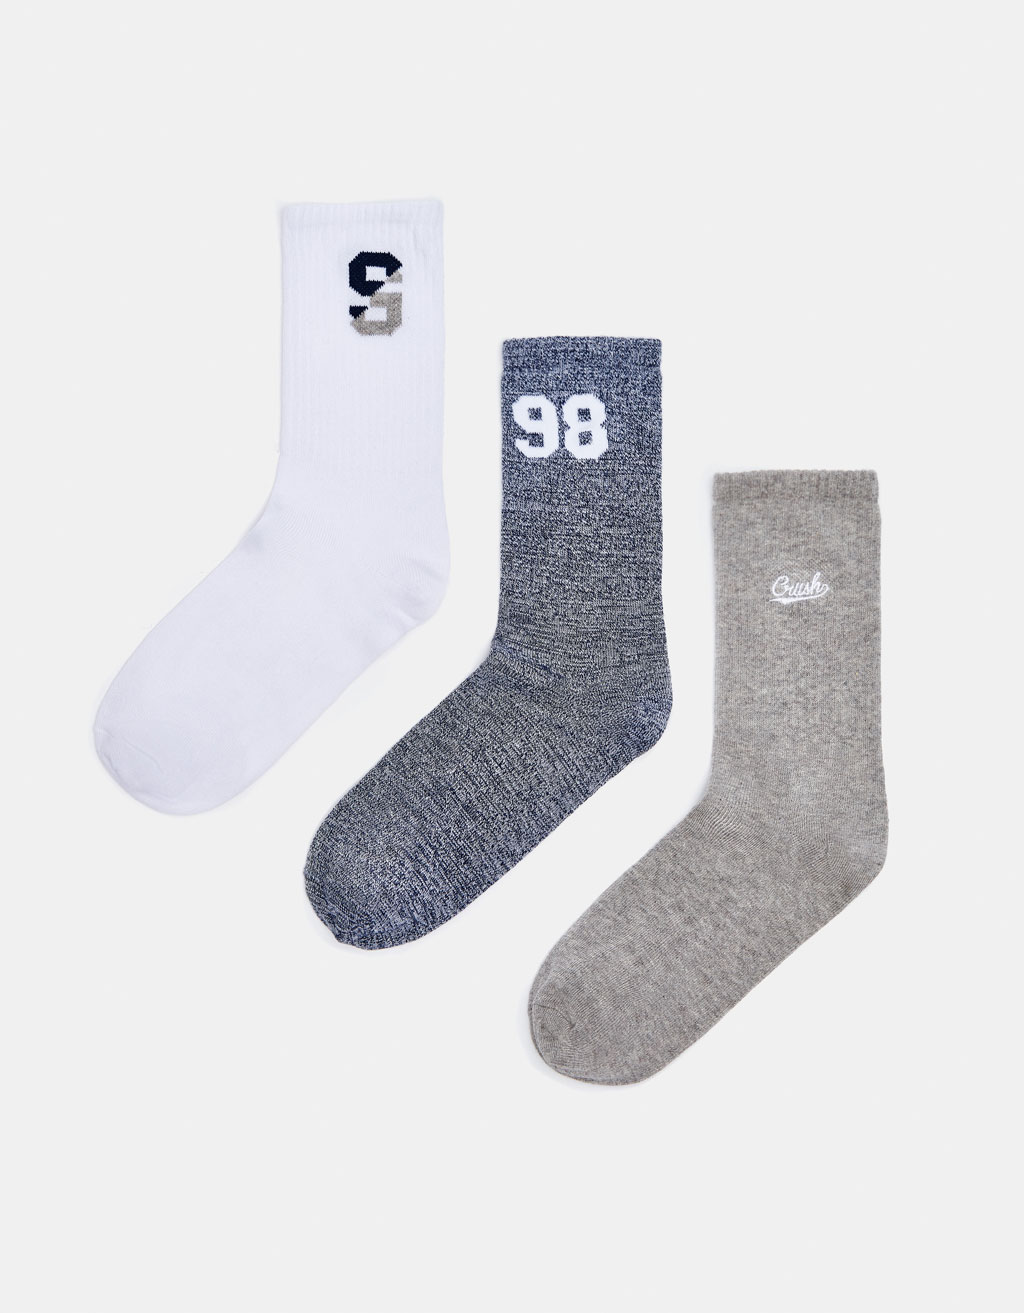 Pack of 3 Join Life old school socks